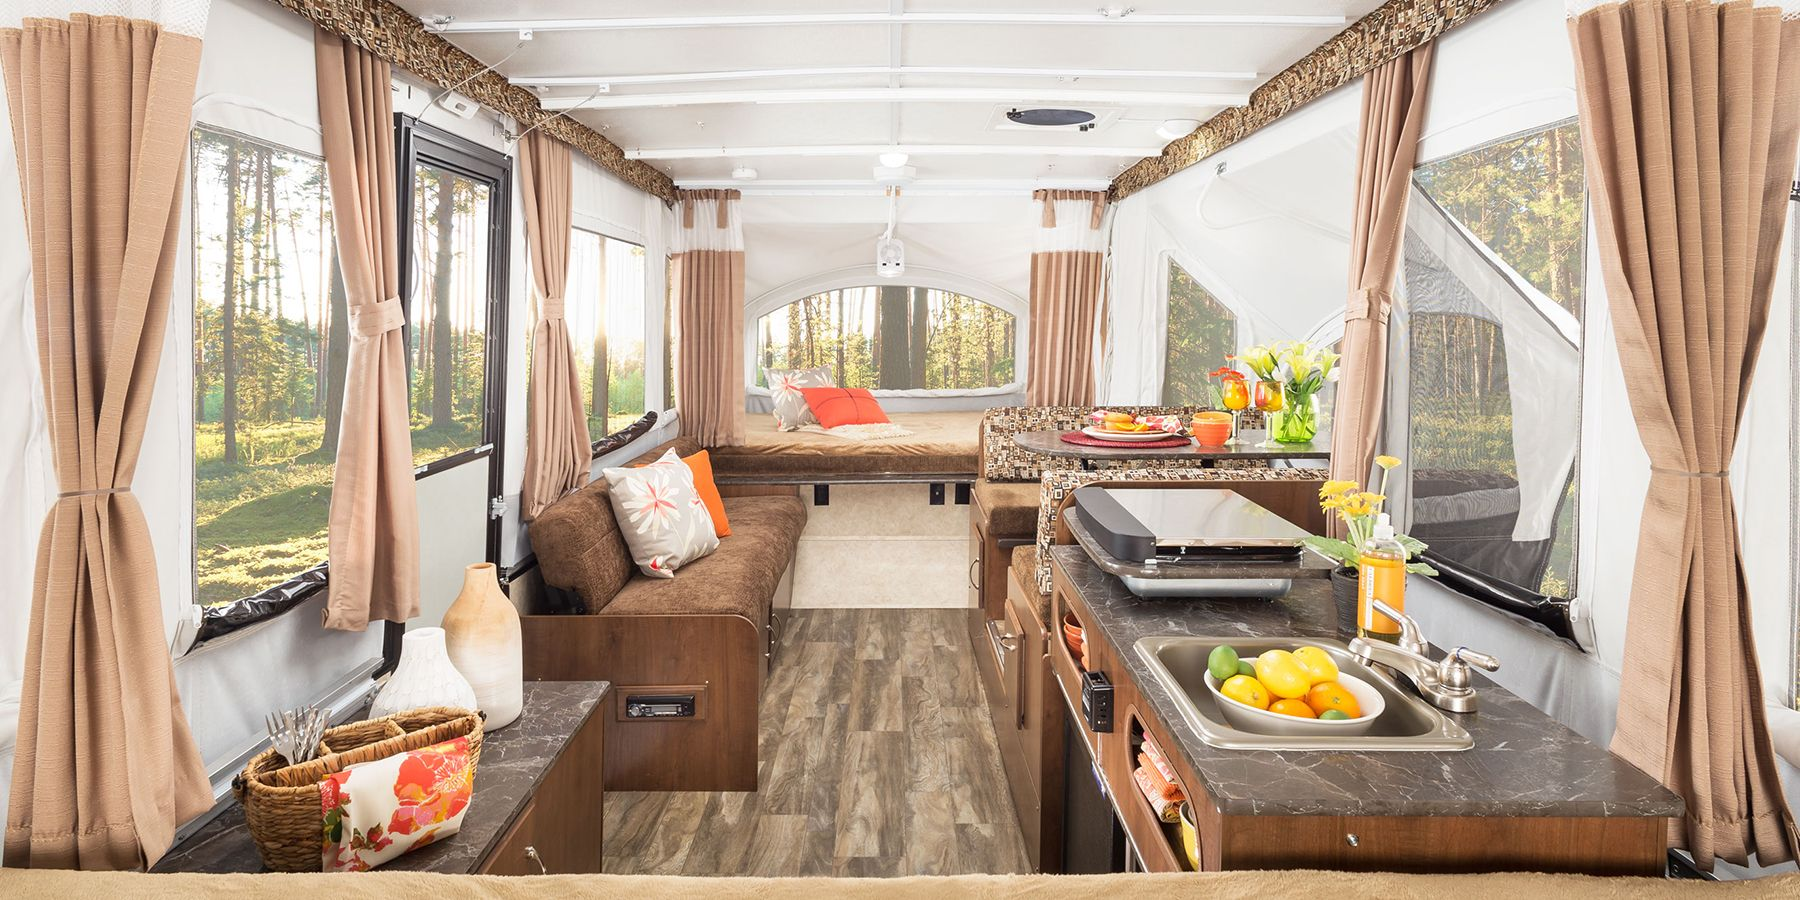 Perfect Small Campers With Bathrooms When Nature Calls - Popup with bathroom